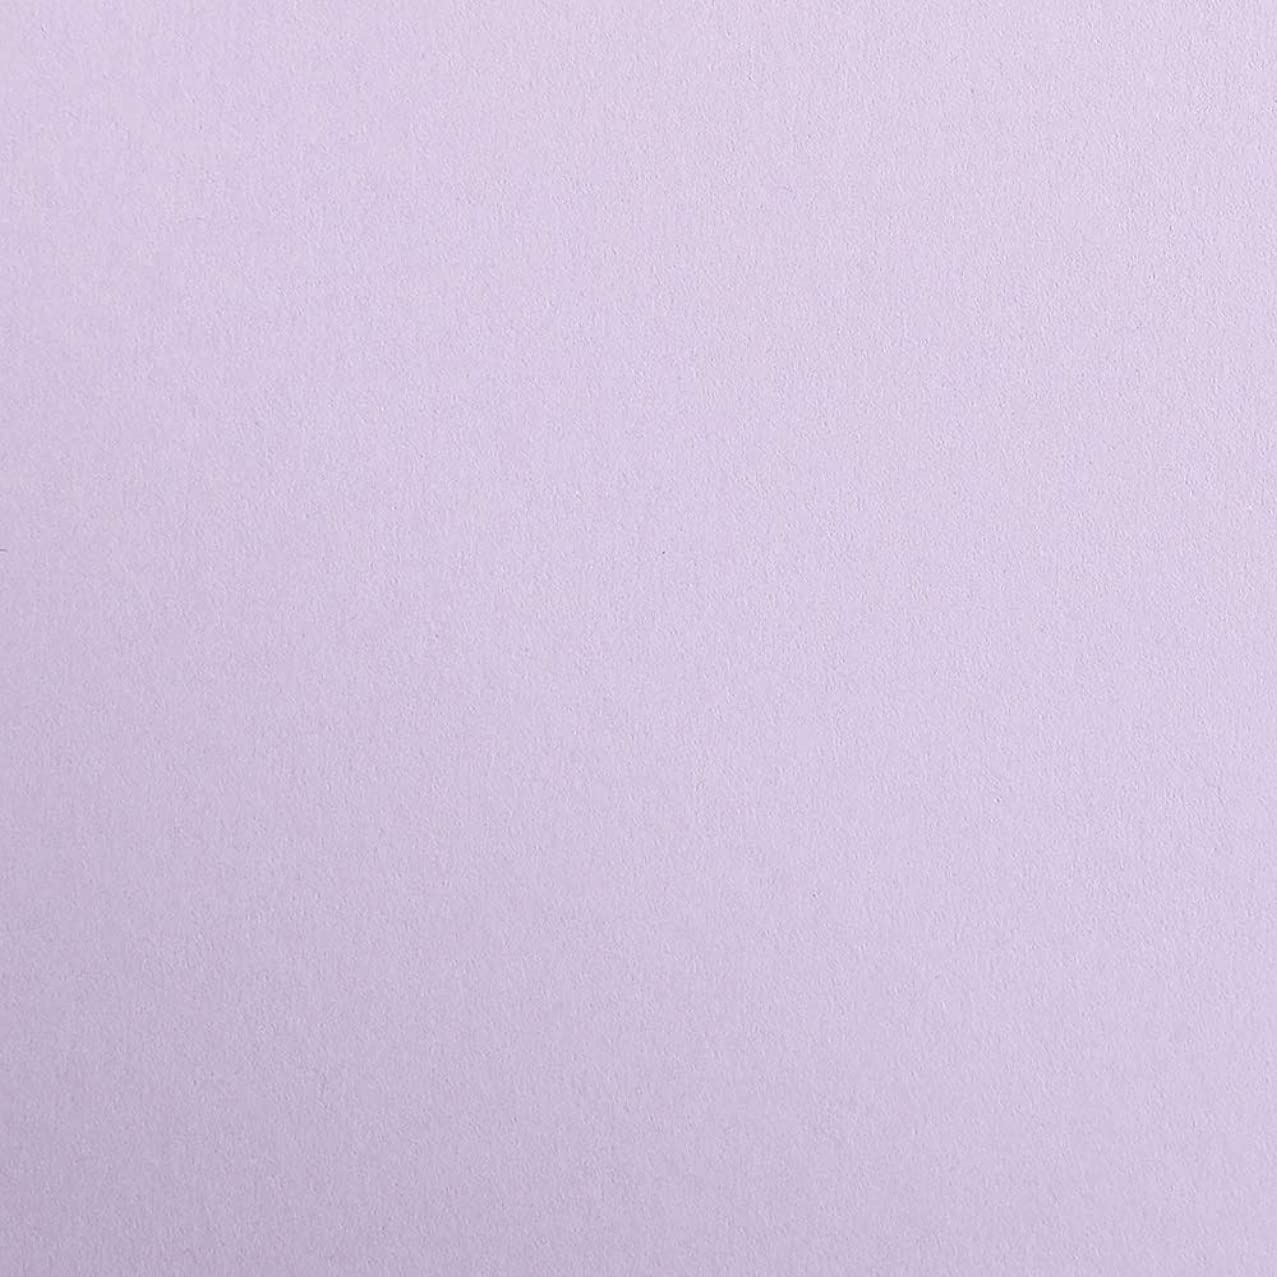 Clairefontaine Maya Coloured Smooth Drawing Paper, 270 g, A3 - Lilac, Pack of 25 Sheets